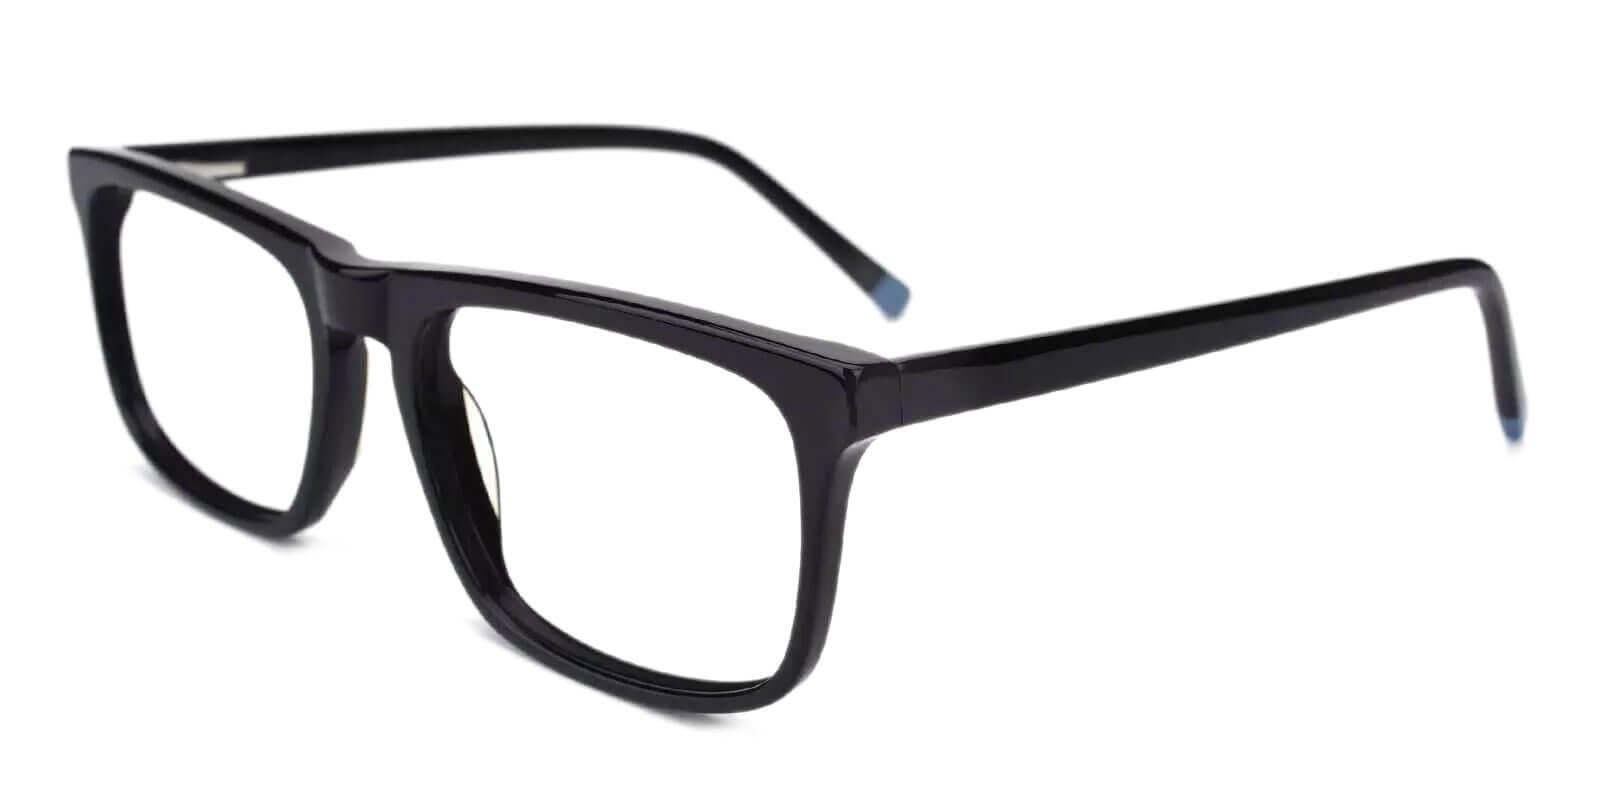 McIntosh Black Acetate Eyeglasses , Lightweight , SpringHinges , UniversalBridgeFit Frames from ABBE Glasses